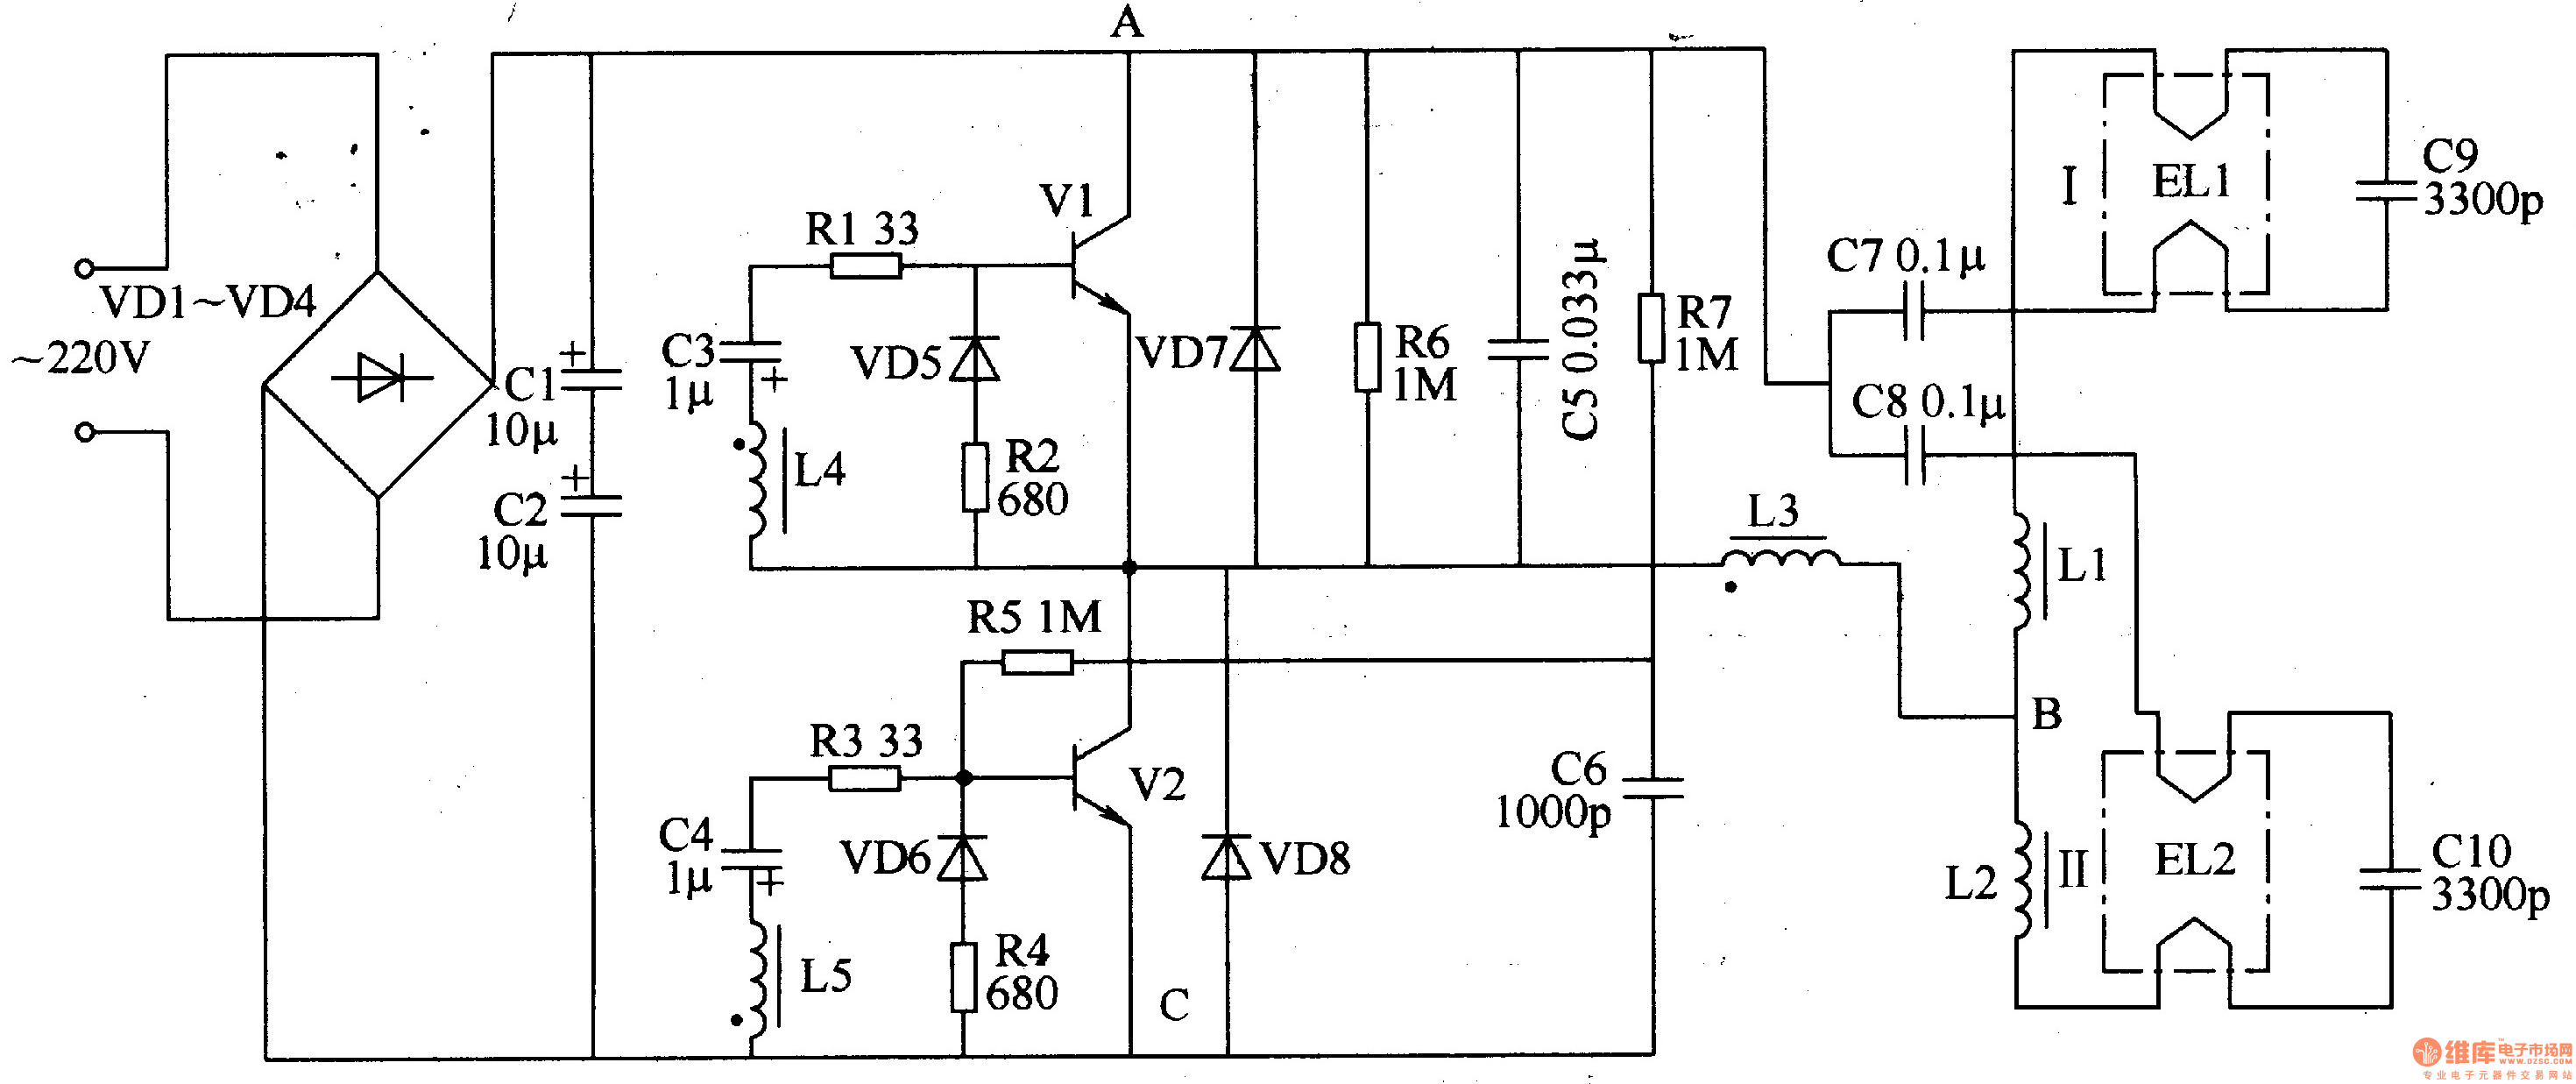 Wiring Diagram Of A Fluorescent Light Ballast : Gt circuits fluorescent lamp electronic ballast l